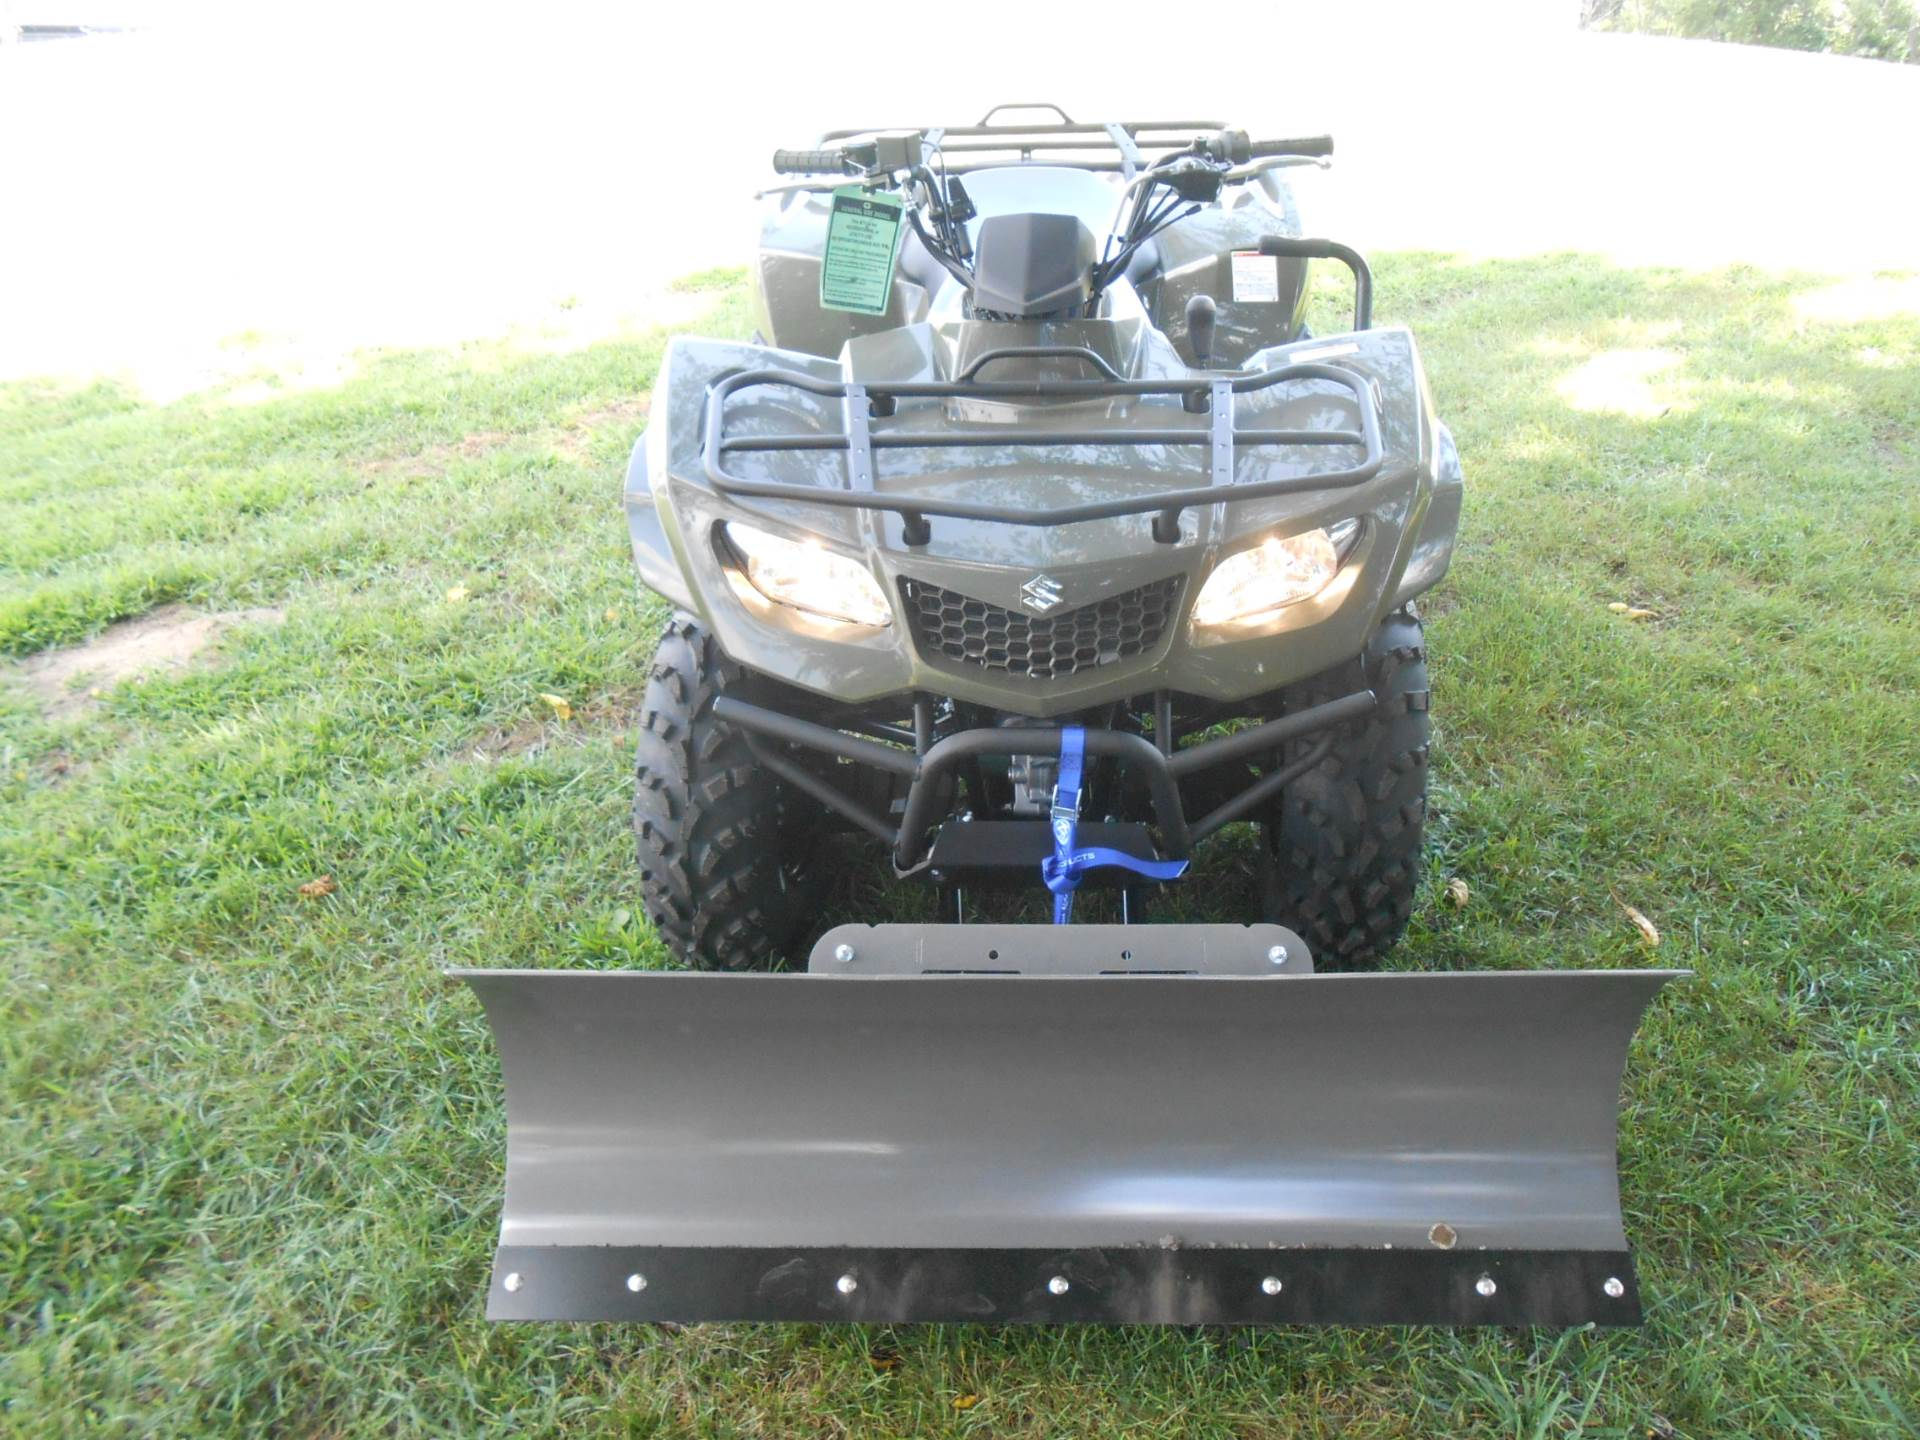 2019 Suzuki KingQuad 400ASi in Howell, Michigan - Photo 4